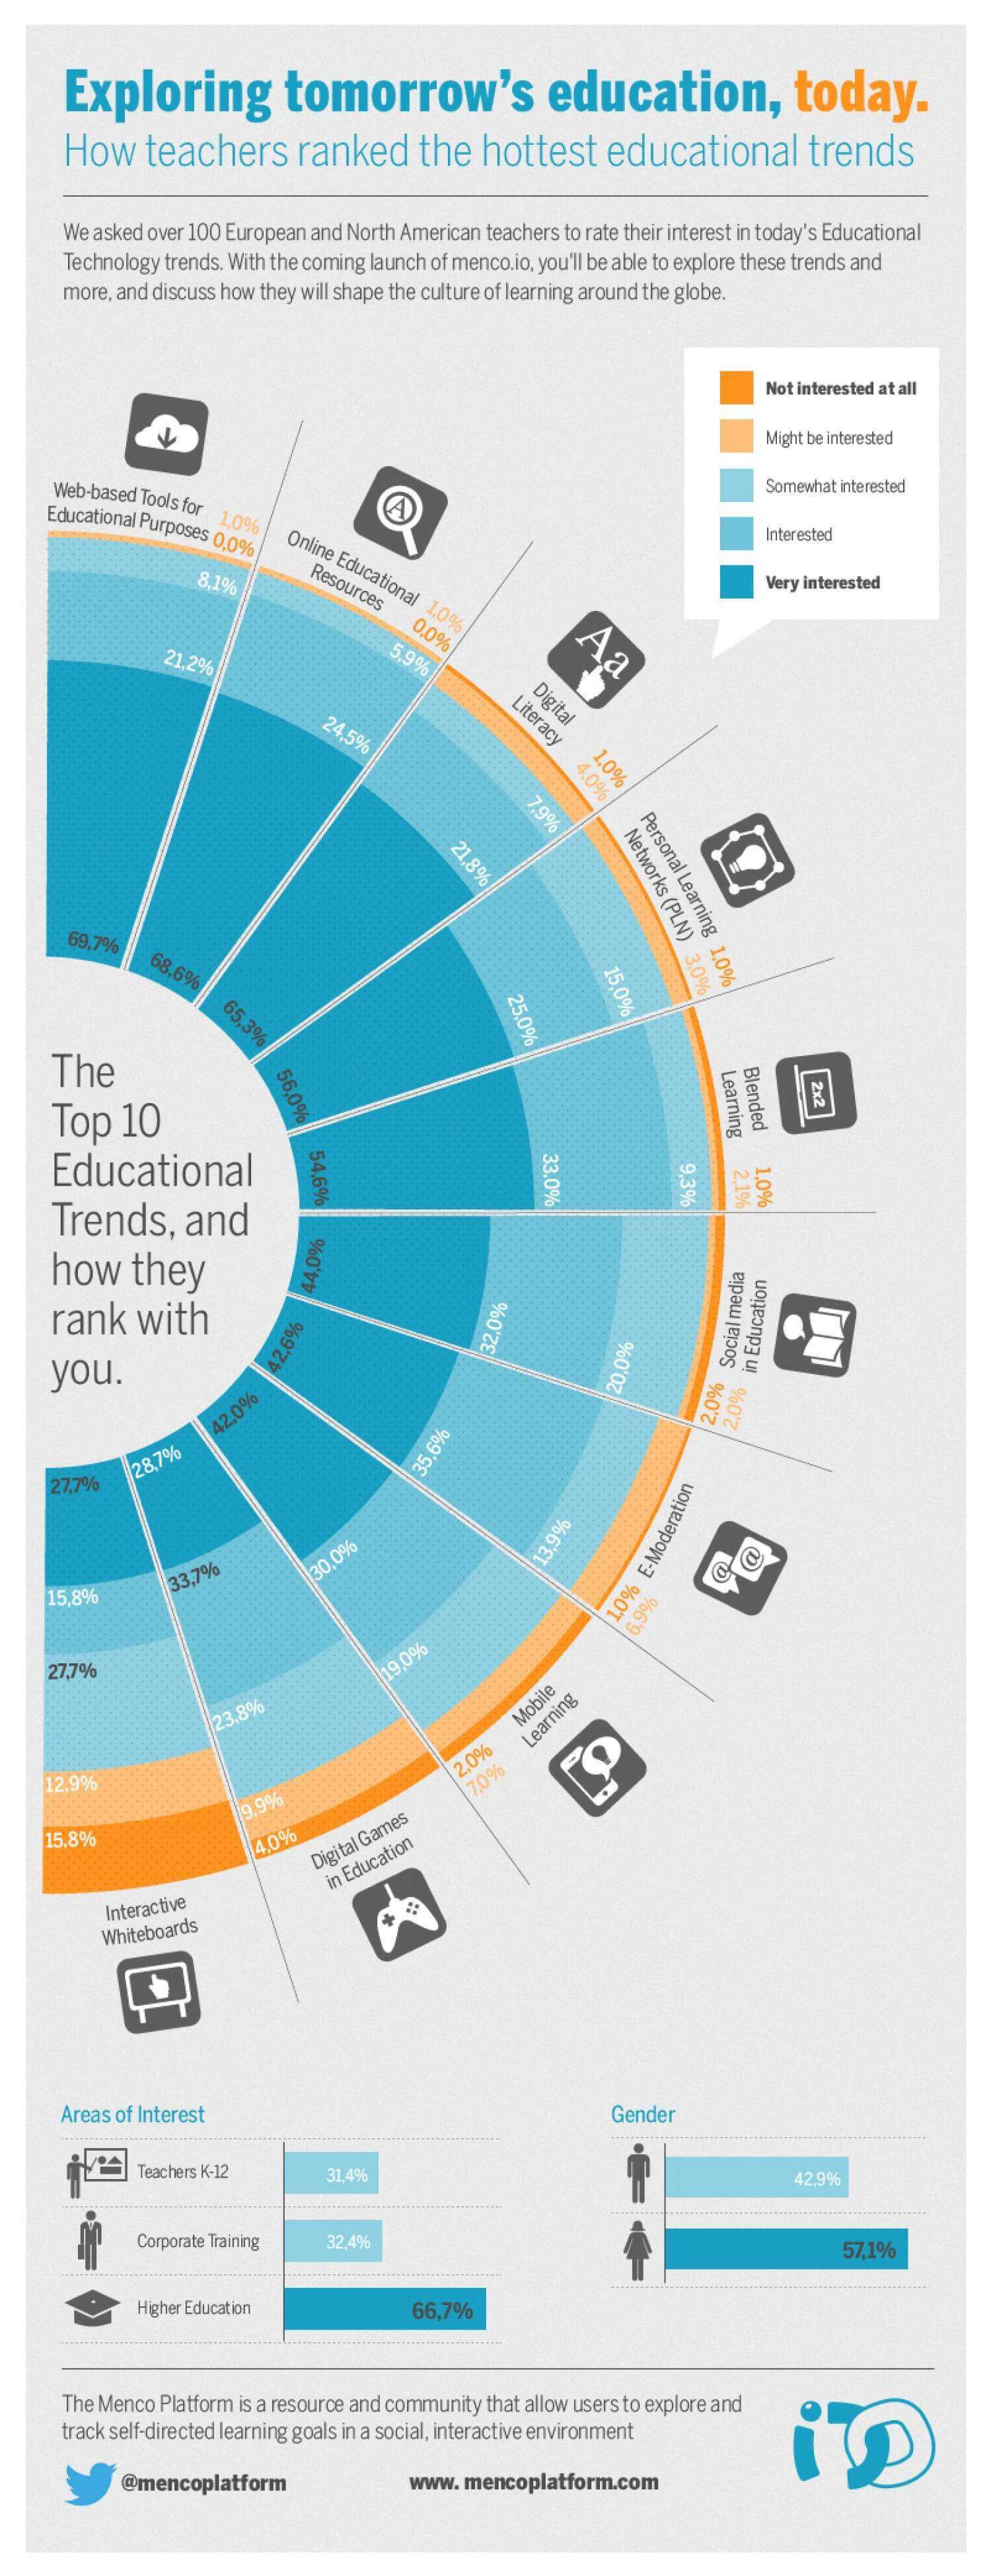 The Hottest Educational Technology Trends based on Teachers - Infographic